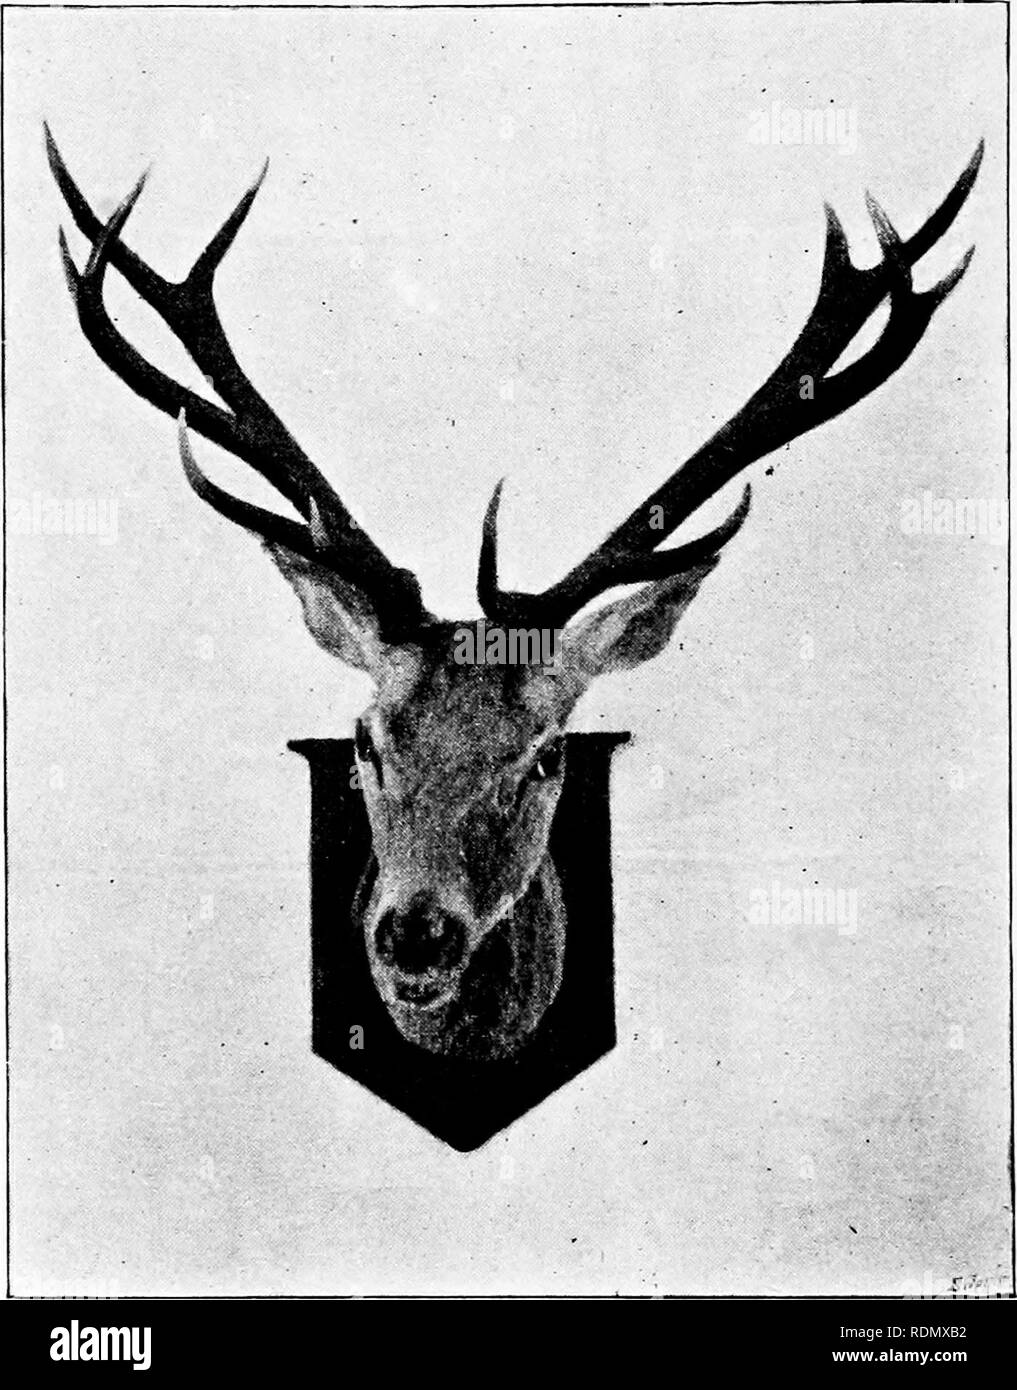 """. Wild Spain (Espan?a agreste): records of sport with rifle, rod, and gun; natural history and exploration. Natural history; Hunting; Game and game-birds. 414 """"WILD SPAIN. drops of blood, all enveloped in sand, quite indiscernible to my eye, were instantly detected by the guardas. The dogs were laid on, and within a few minutes we heard the crash which told of the stag at bay. The final scene was. A FIFTEKN-l'OINTER. just completed when I reached the spot—on foot, for in the rough scramble through forest and broken ground I had managed to get thrown, gun and all, and preferred to finish t - Stock Image"""